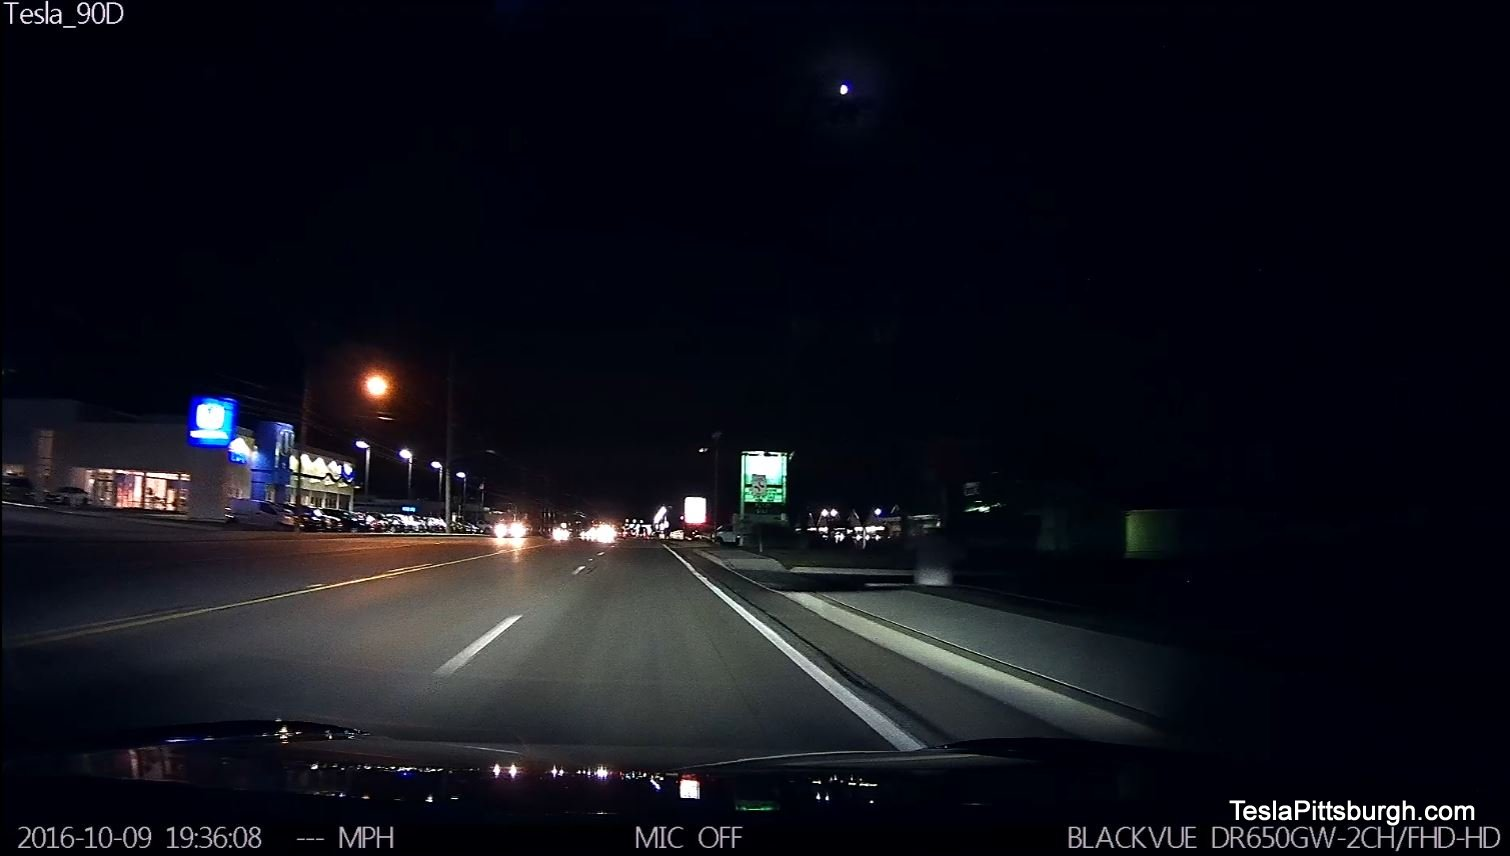 tesla-pittsburgh-dashcam-review-thinkware-f770-camera-wexford-flats-night-blackvue